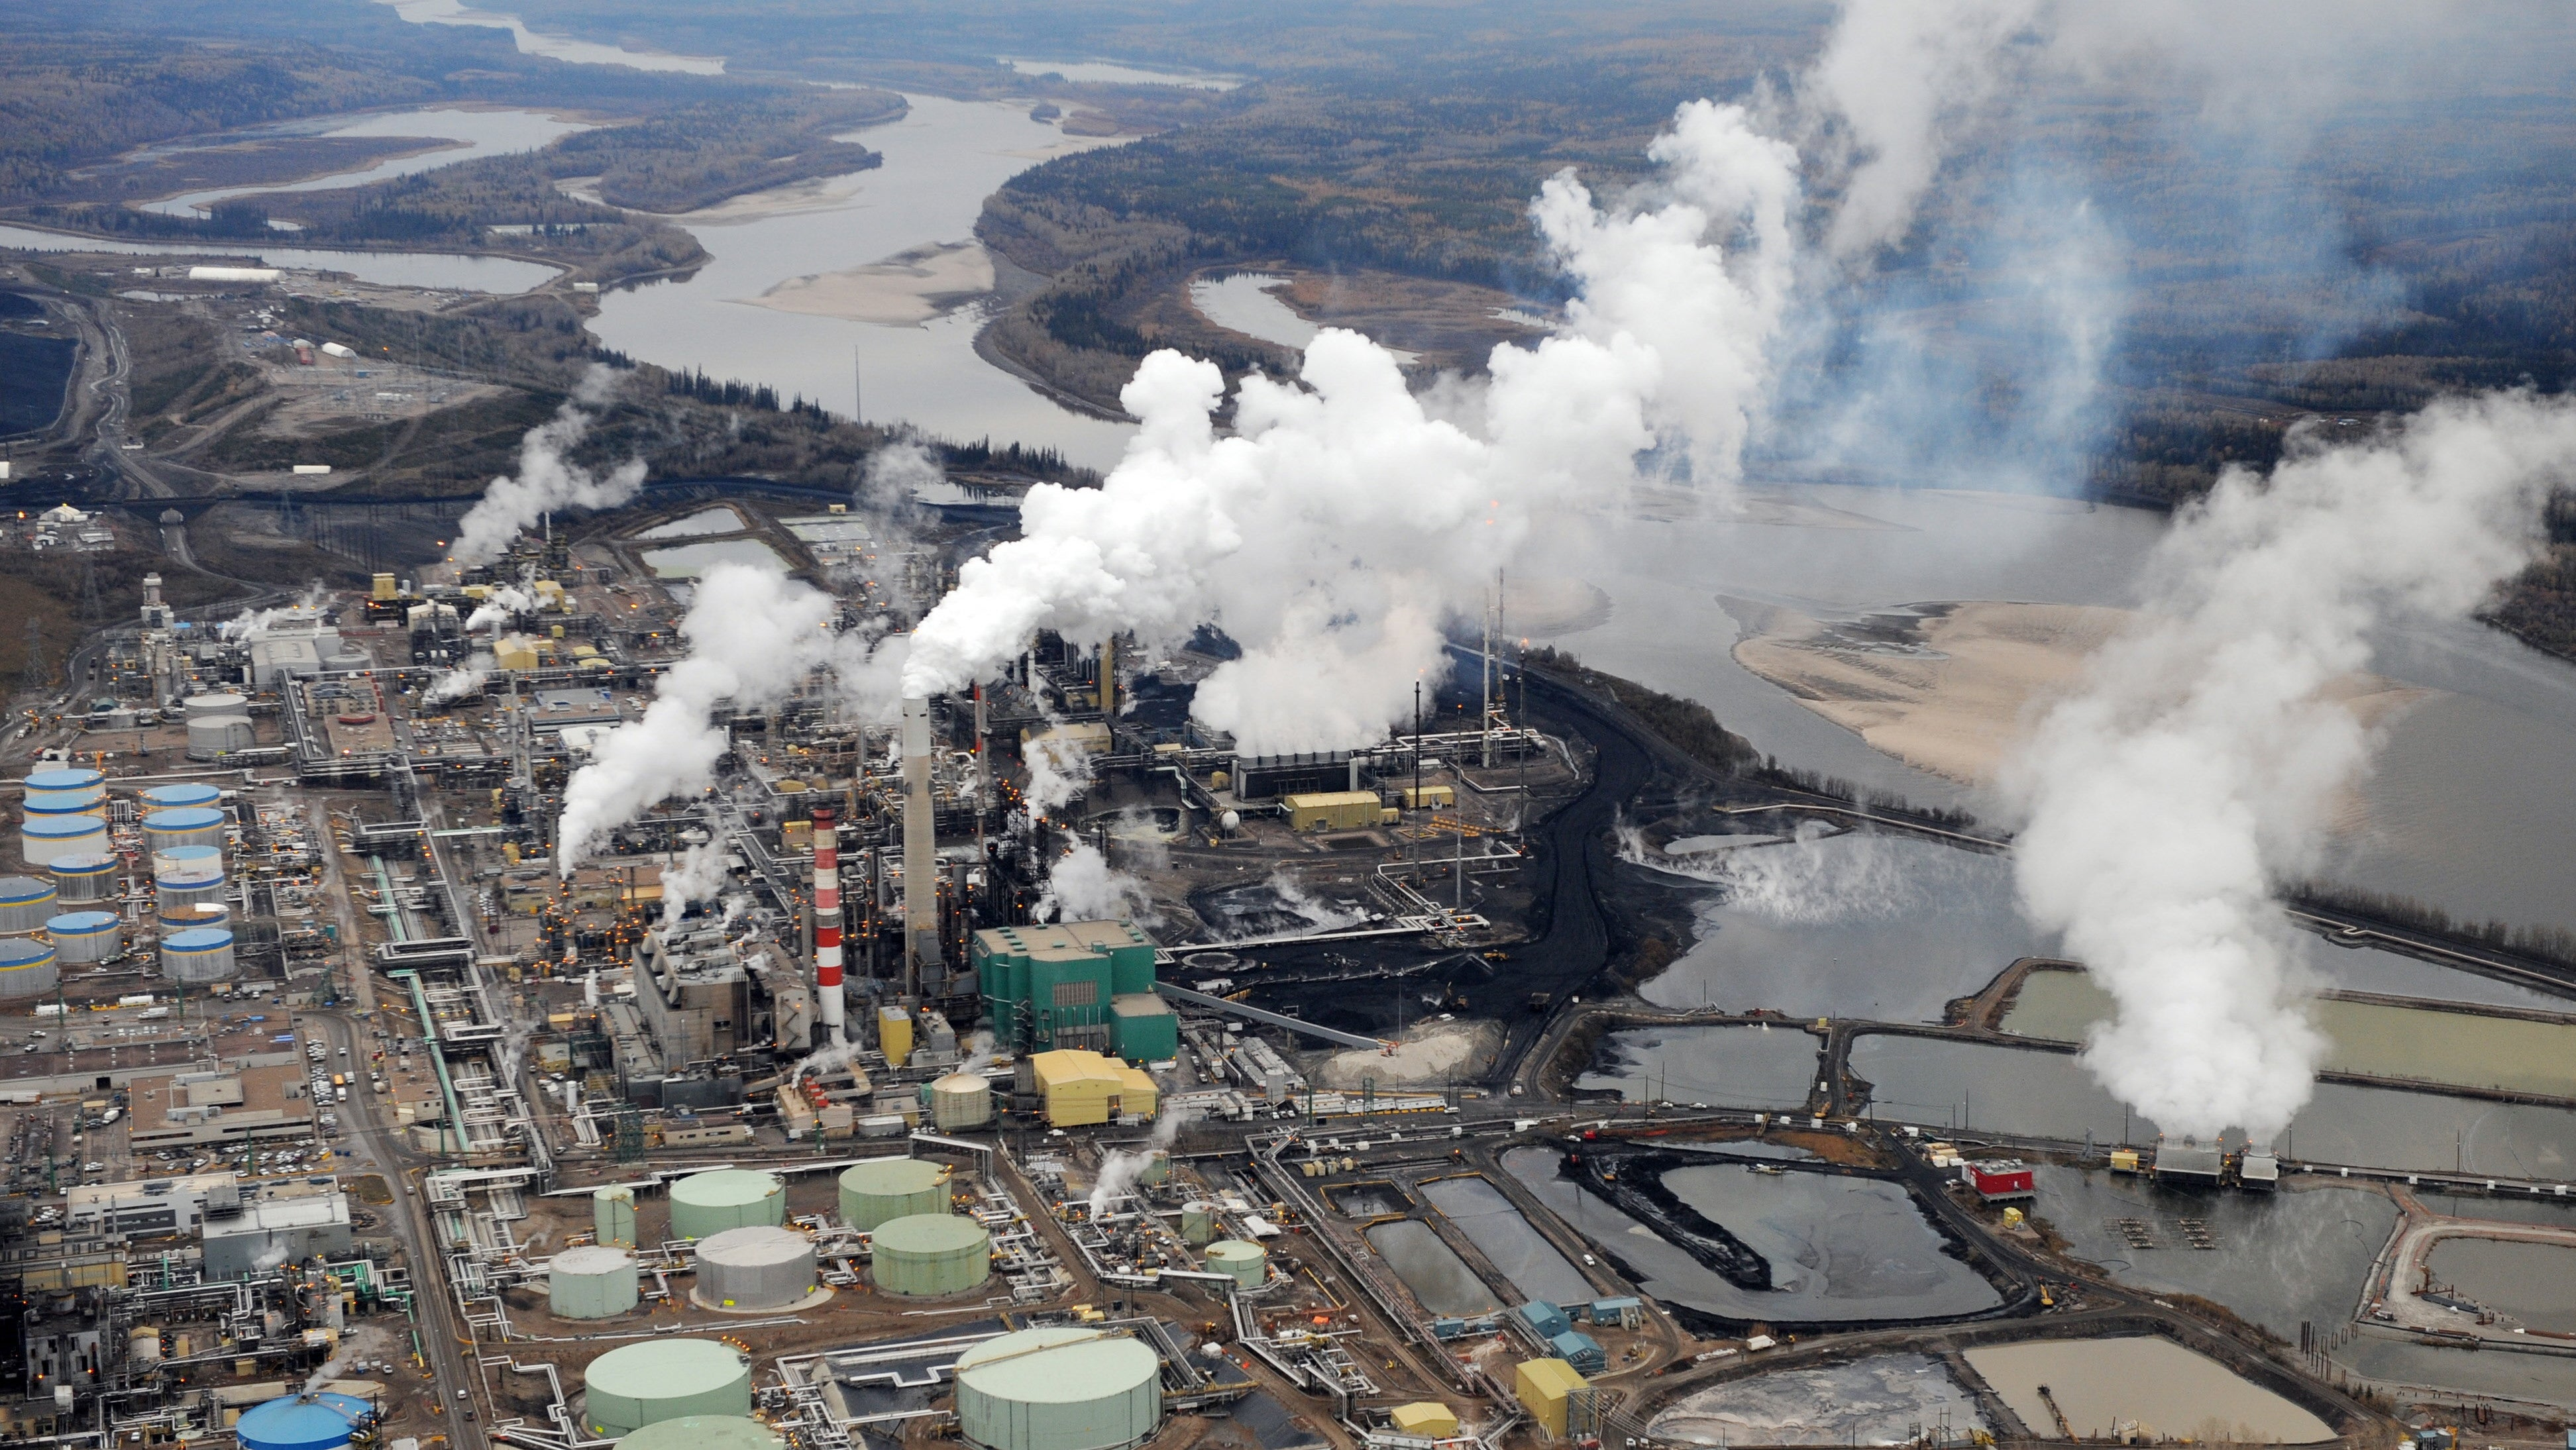 Building All The Fossil Fuel Projects Already In The Pipeline Would Wreck The Climate